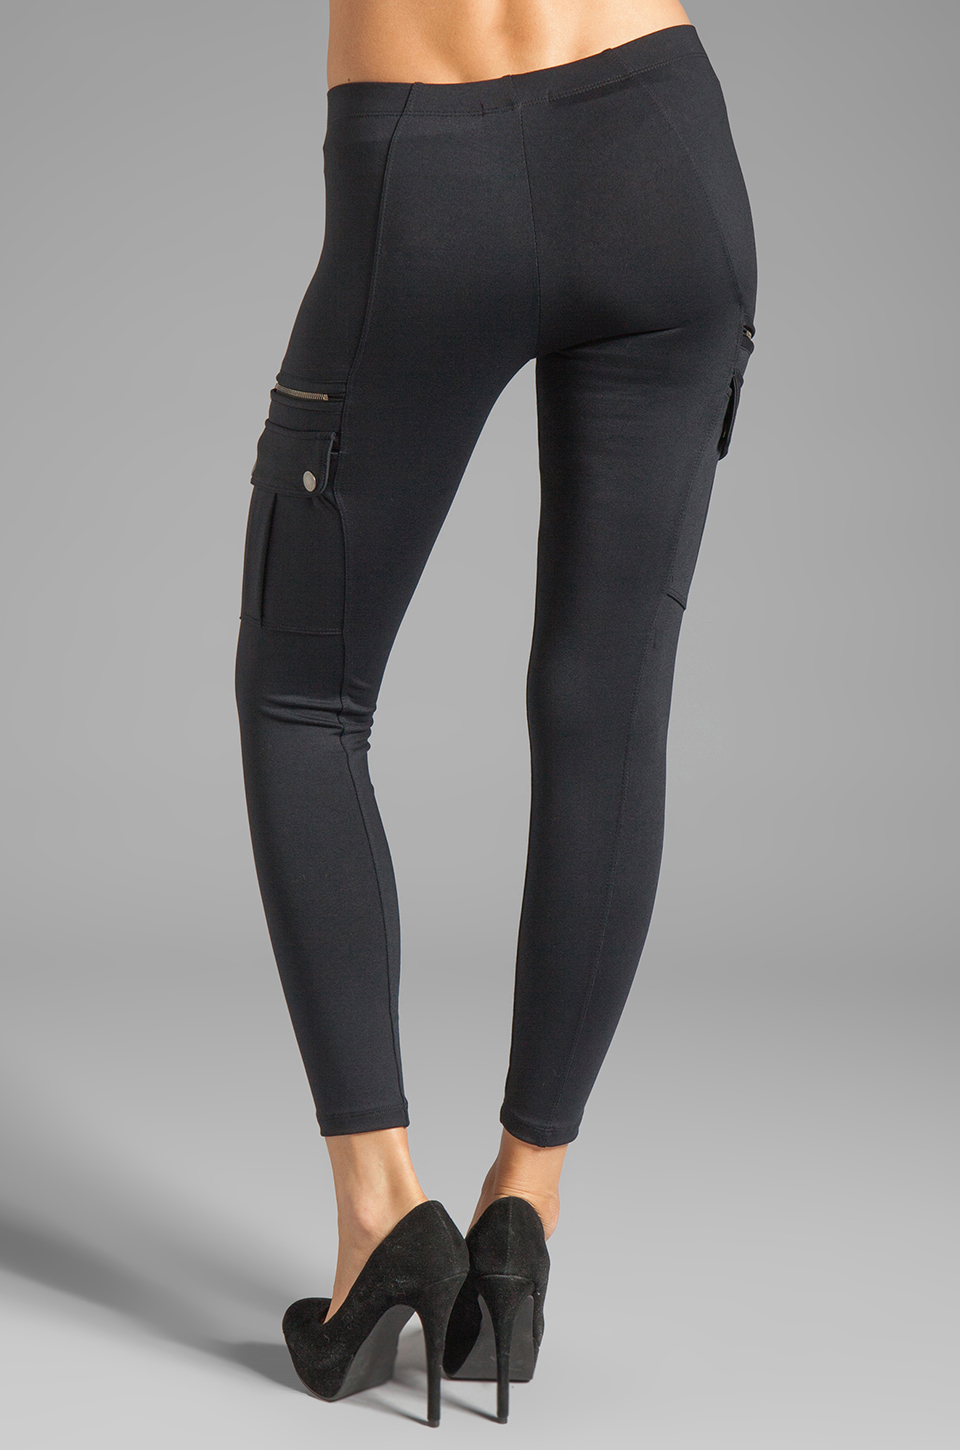 Shop No nonsense Cargo Leggings for a versatile style legging that will take you from work to a night out. Features side cargo pockets and elastic waistband.